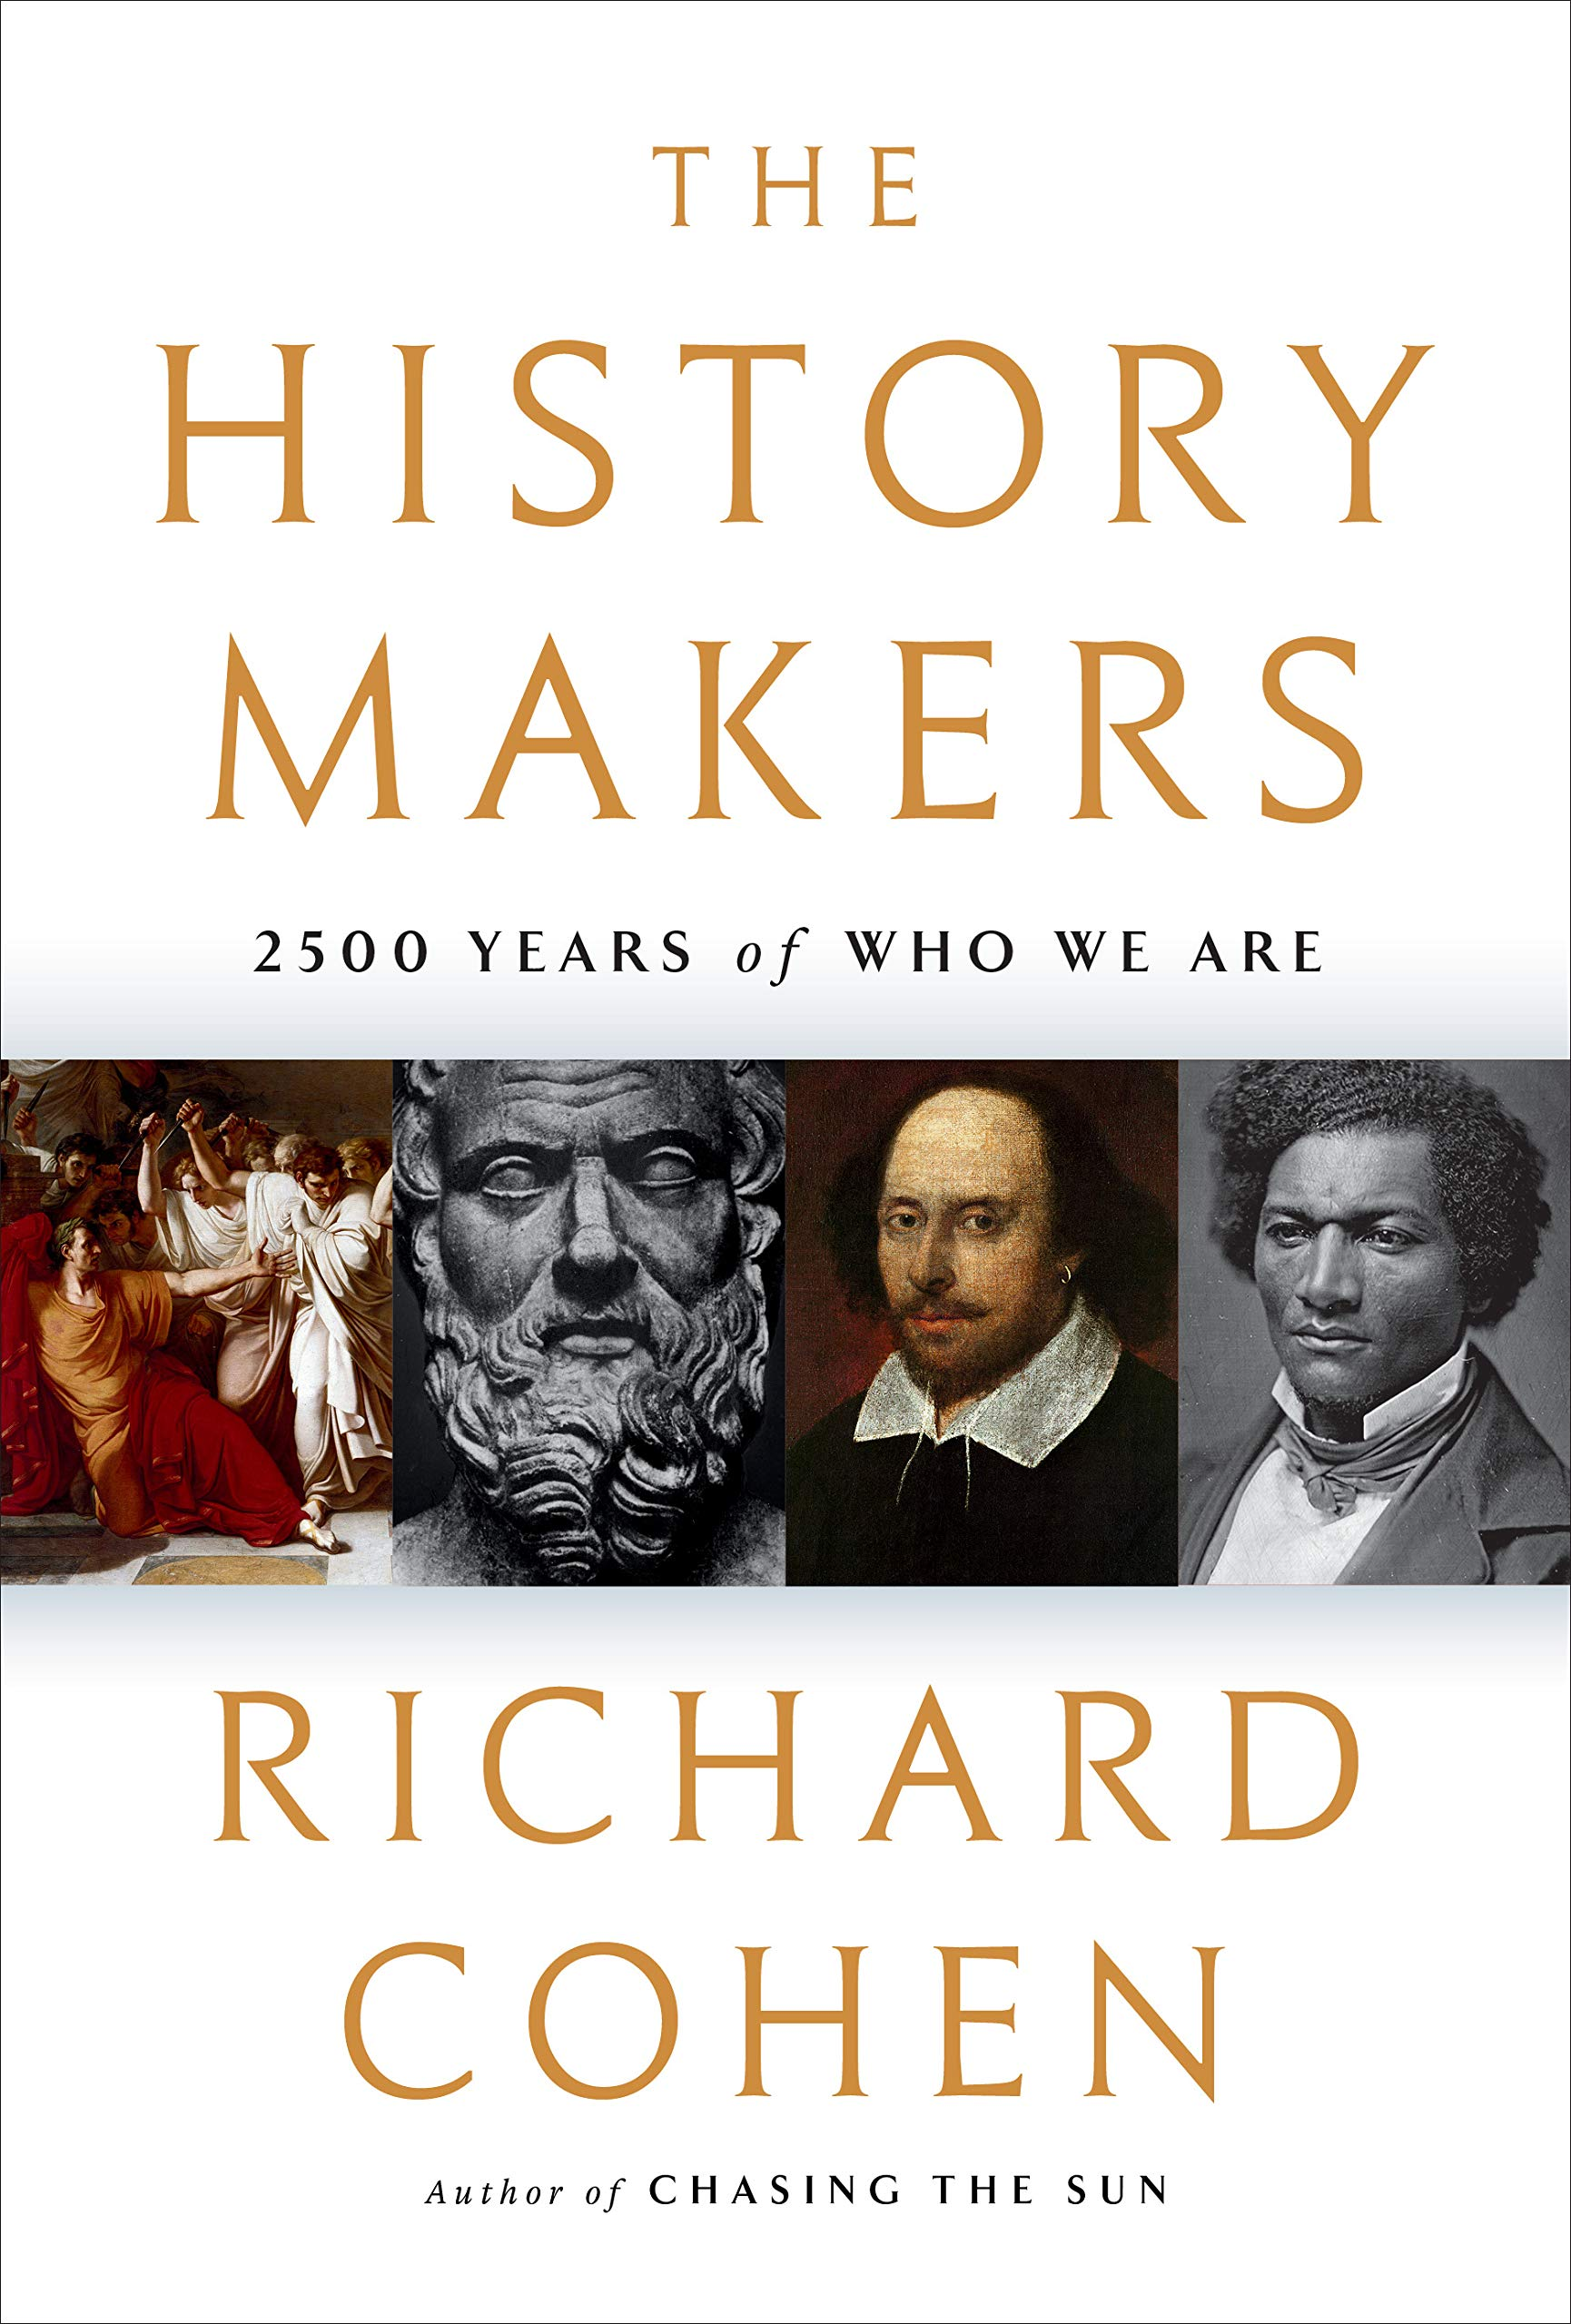 THE HISTORY-MAKERS by Richard Cohen